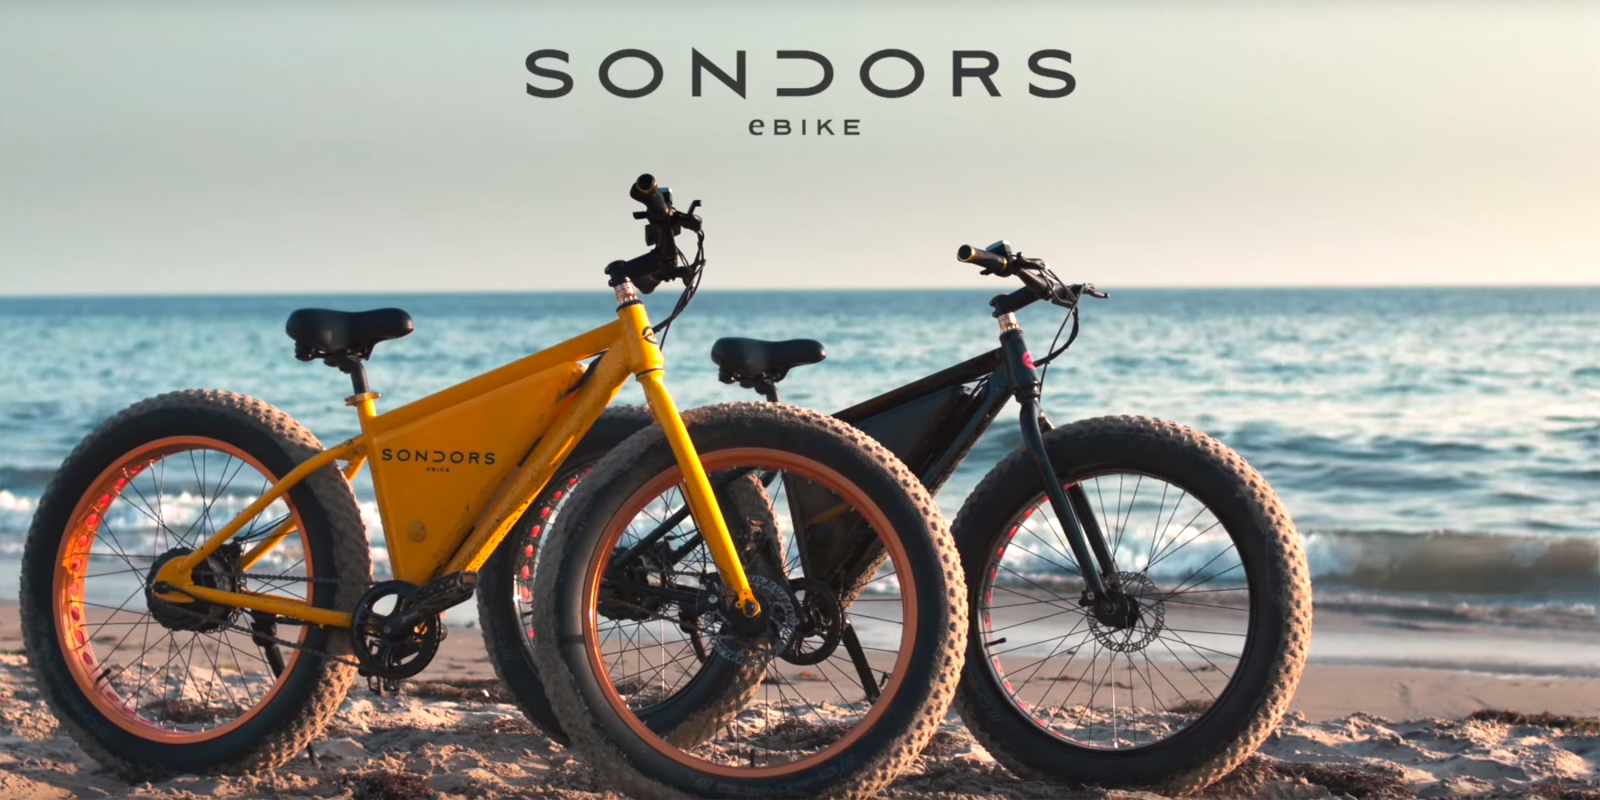 Sondors' Electric for Everyone campaign offers up deep-discounted $799 e-bikes